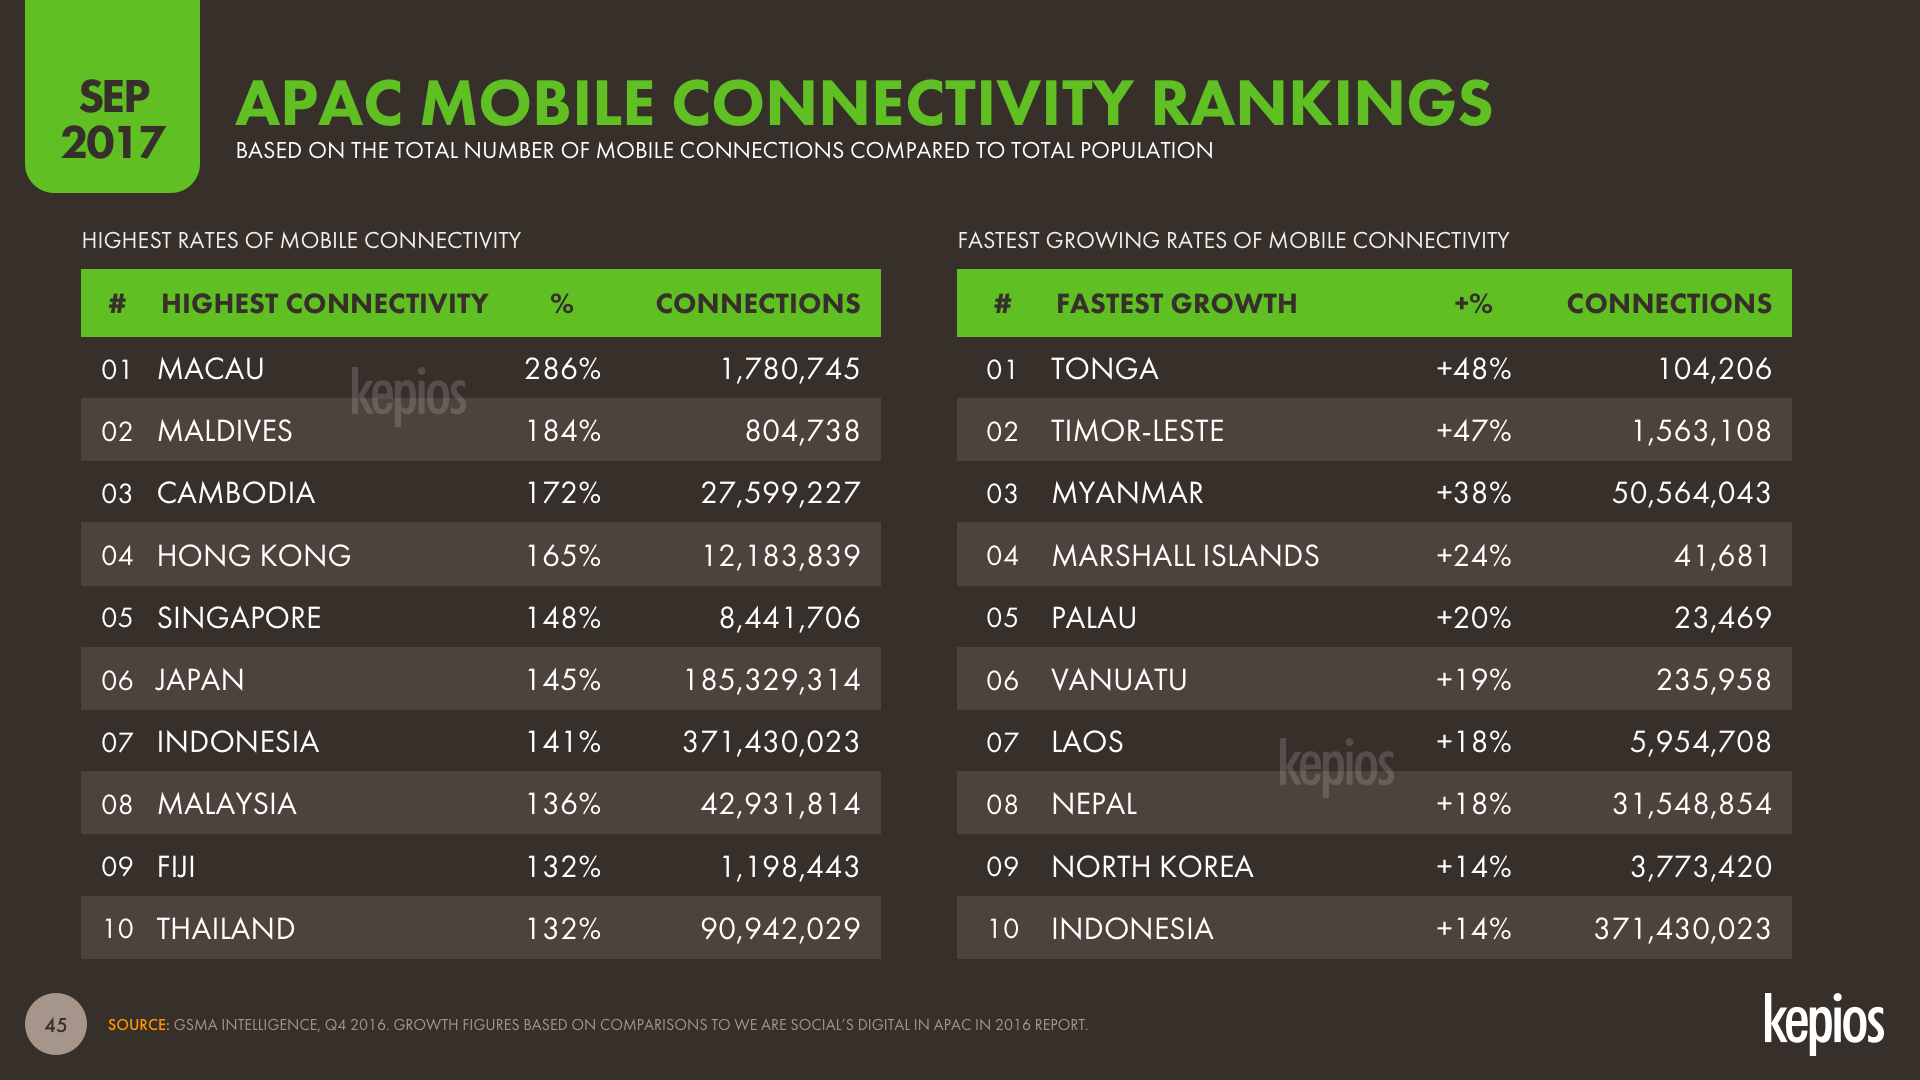 APAC Mobile Connectivity Rankings, Sep 2017